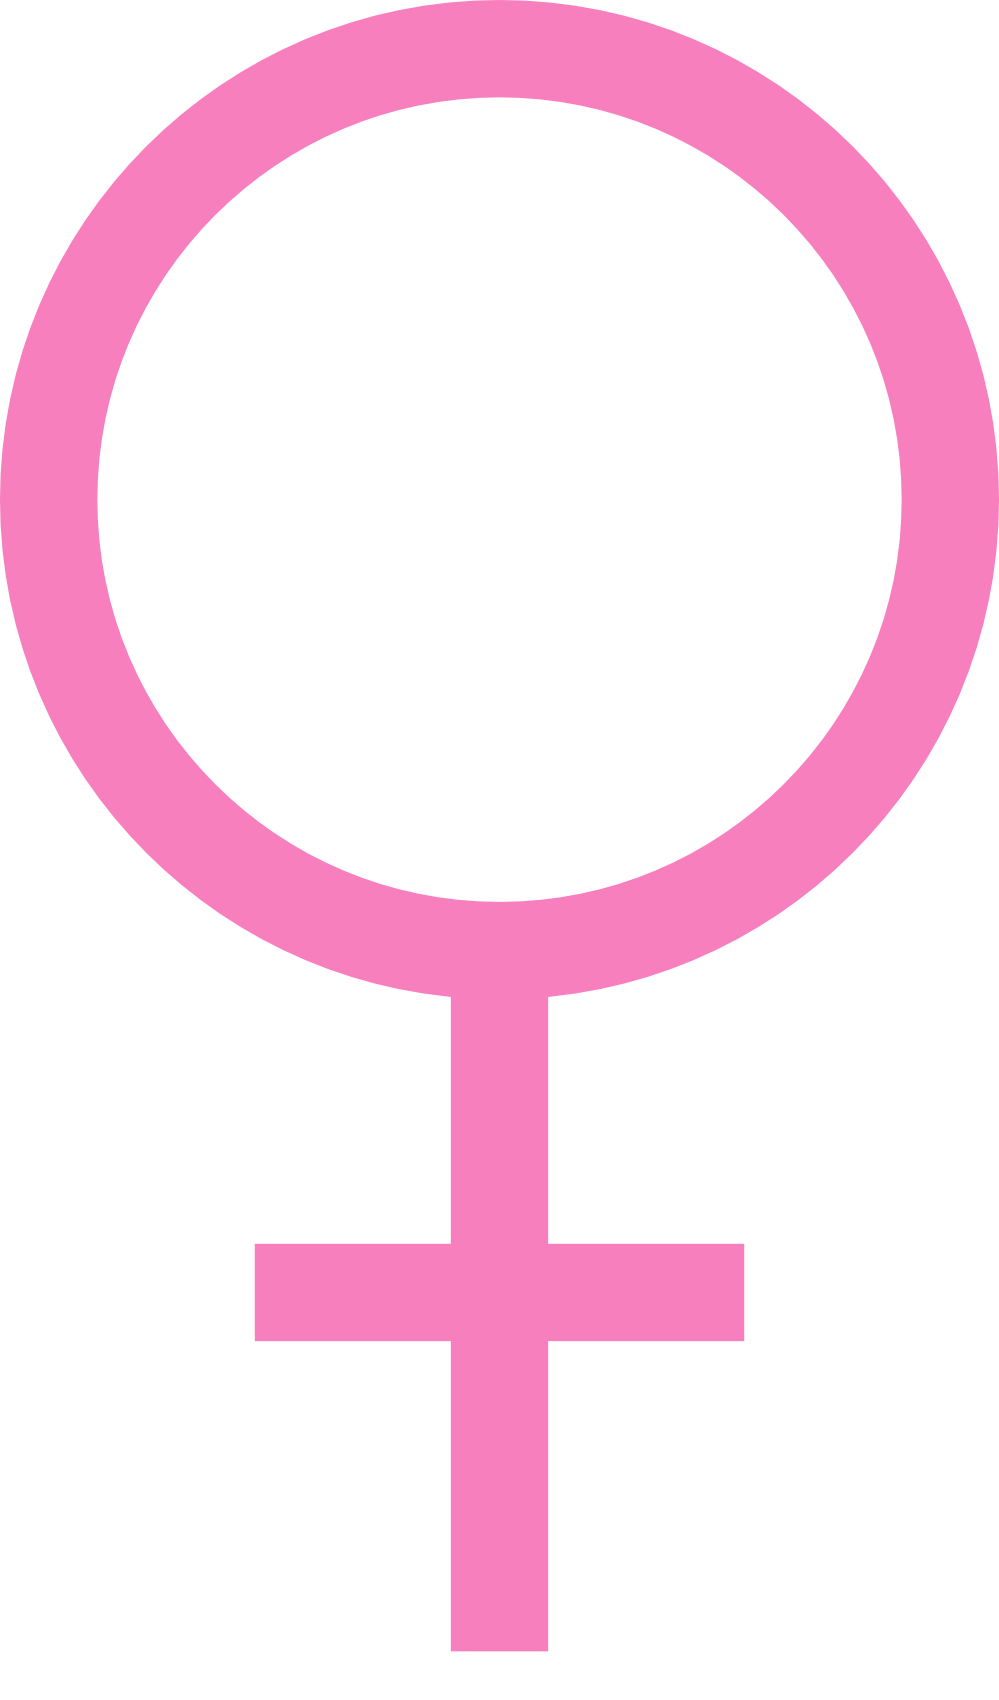 Image female symbol color colour persian pink 999pxg idea female symbol color colour persian pink 999pxg biocorpaavc Gallery